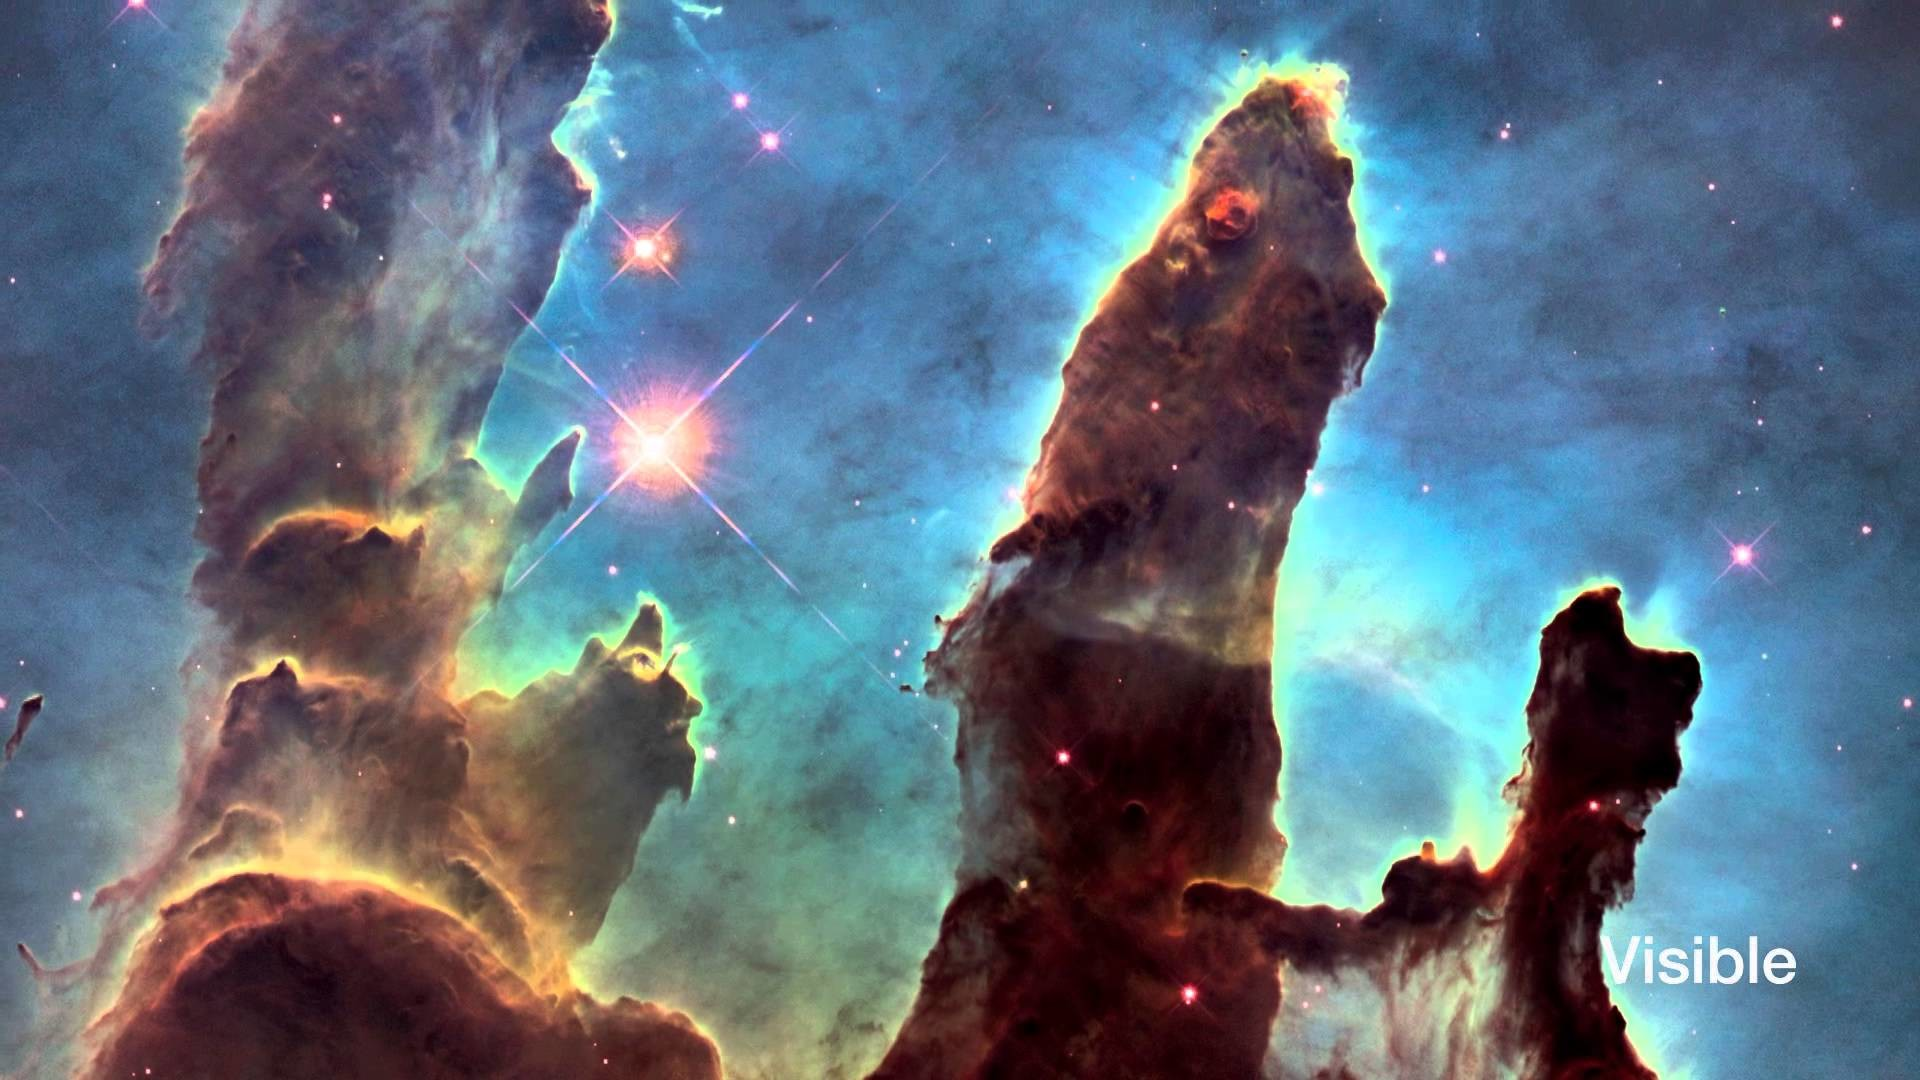 1920x1080 Hubblecast 82: New view of the Pillars of Creation